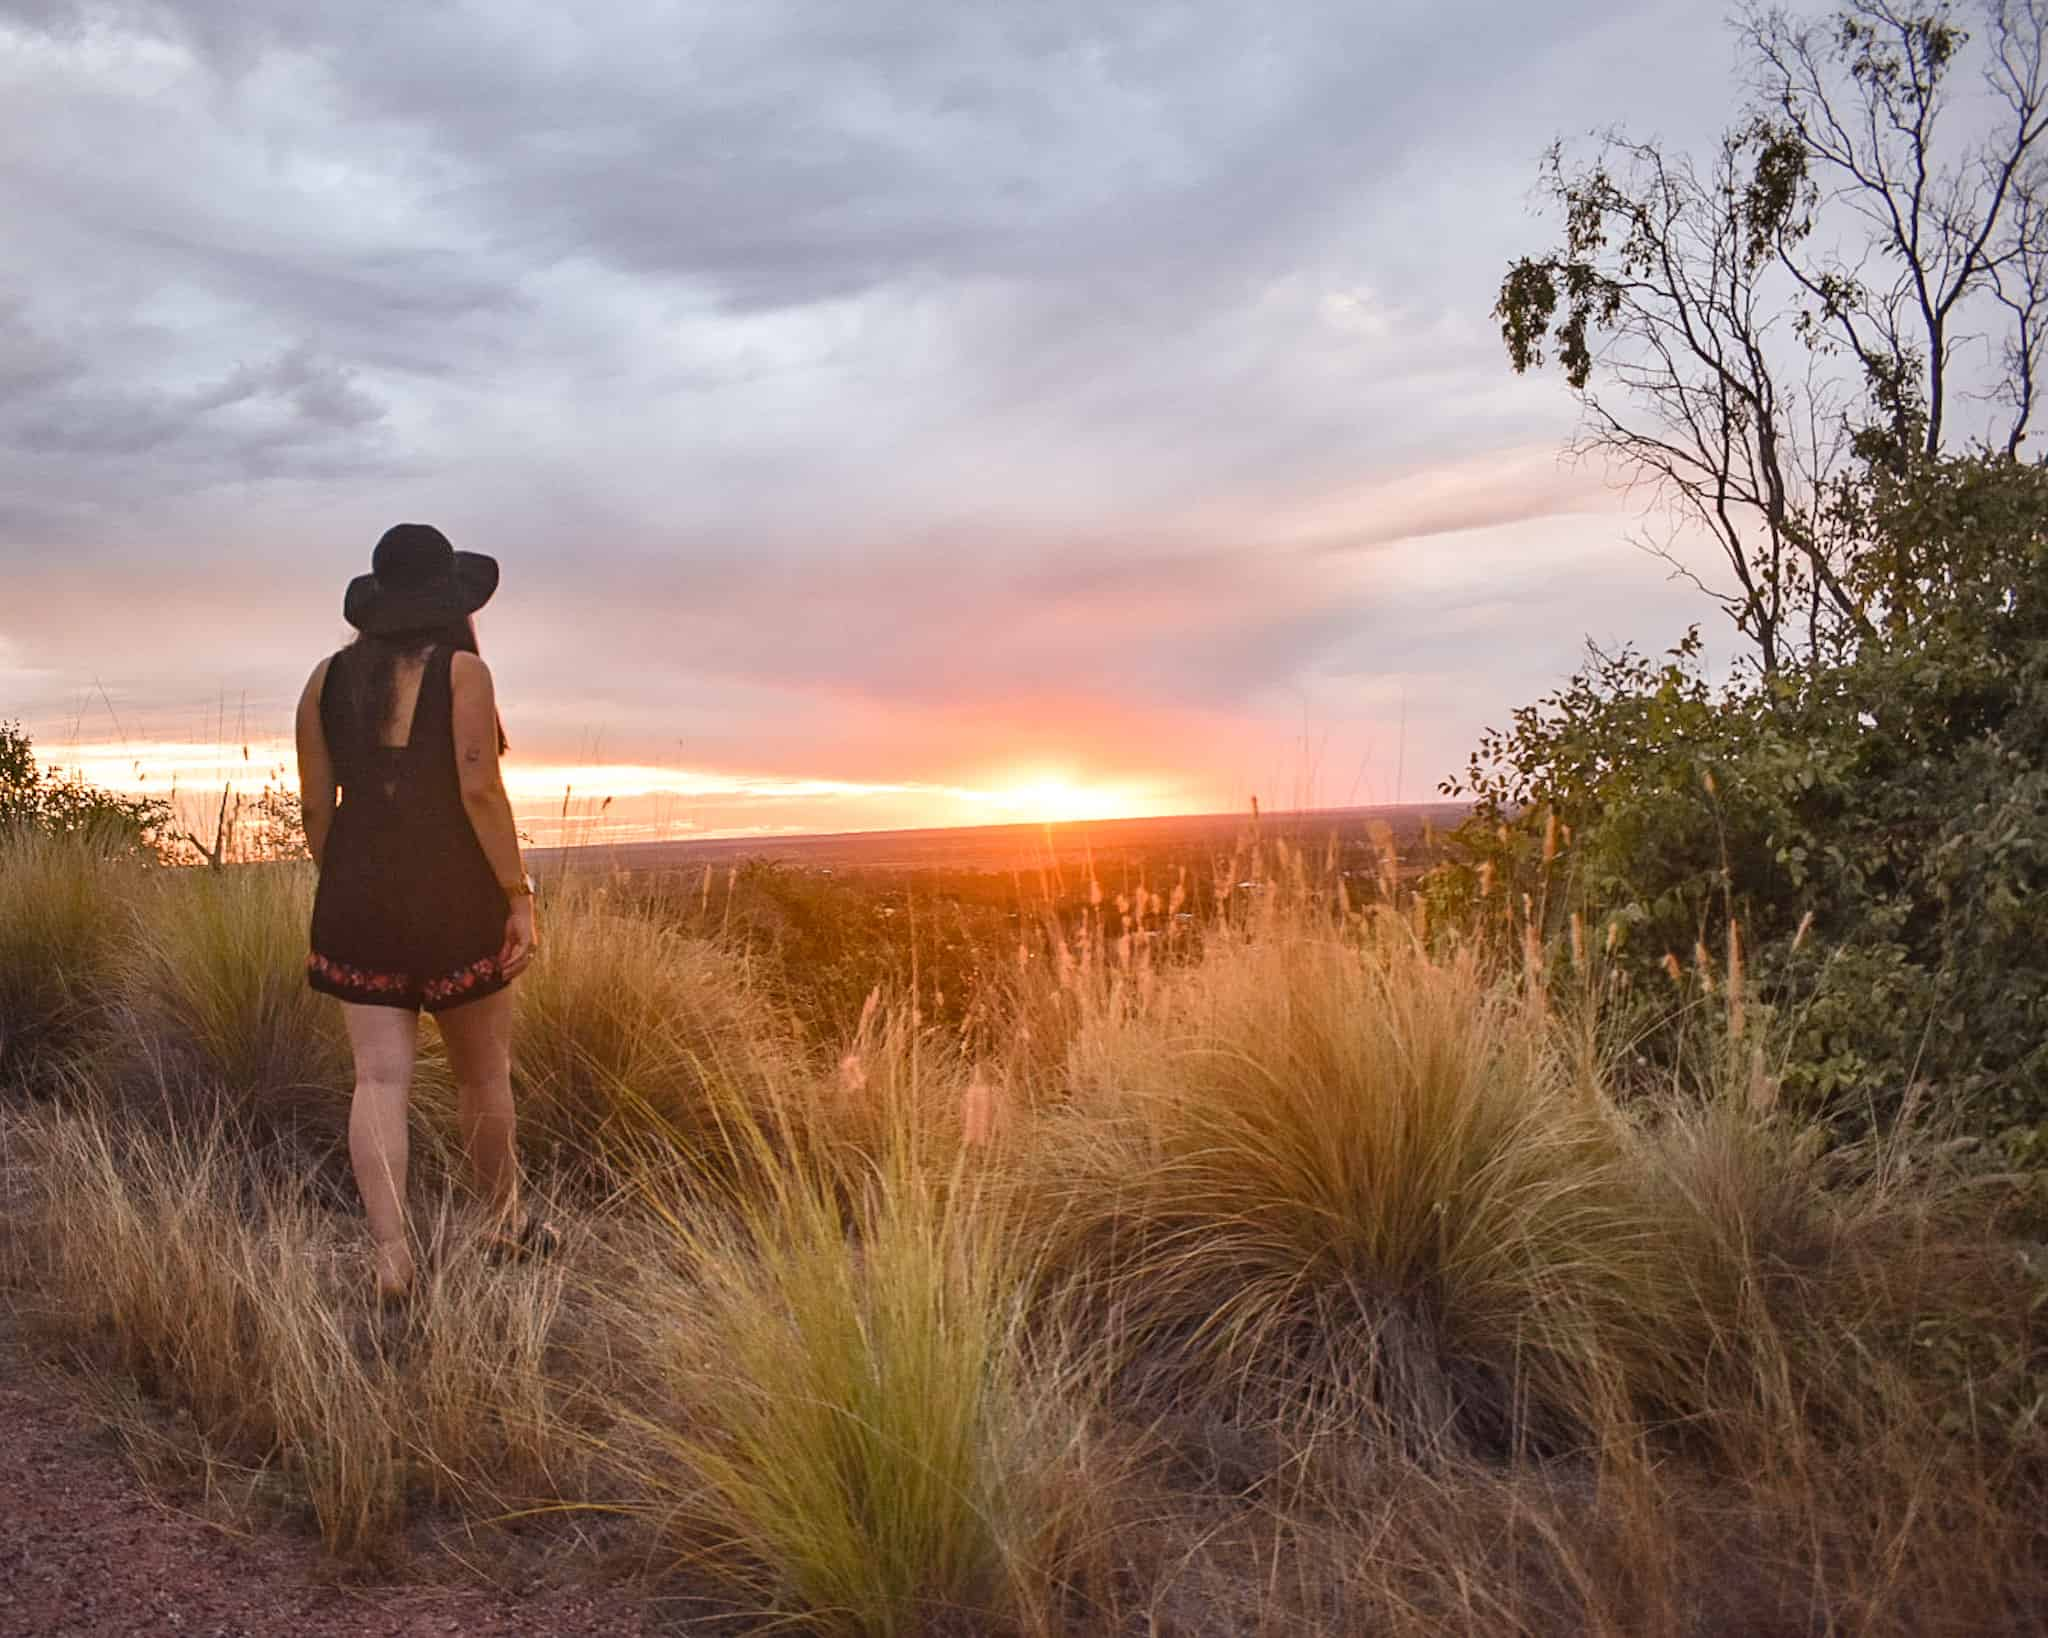 There are an abundance of things to do in Charters Towers if you are planning a vacation to North Queensland or Townsville. It's the outback, located an hour inland from the Great Barrier Reef of Australia, with so many exciting attractions you may not know about. This guide offers 6 of the best things to do to help you plan your trip!#northqueensland #charterstowers #outbackaustralia